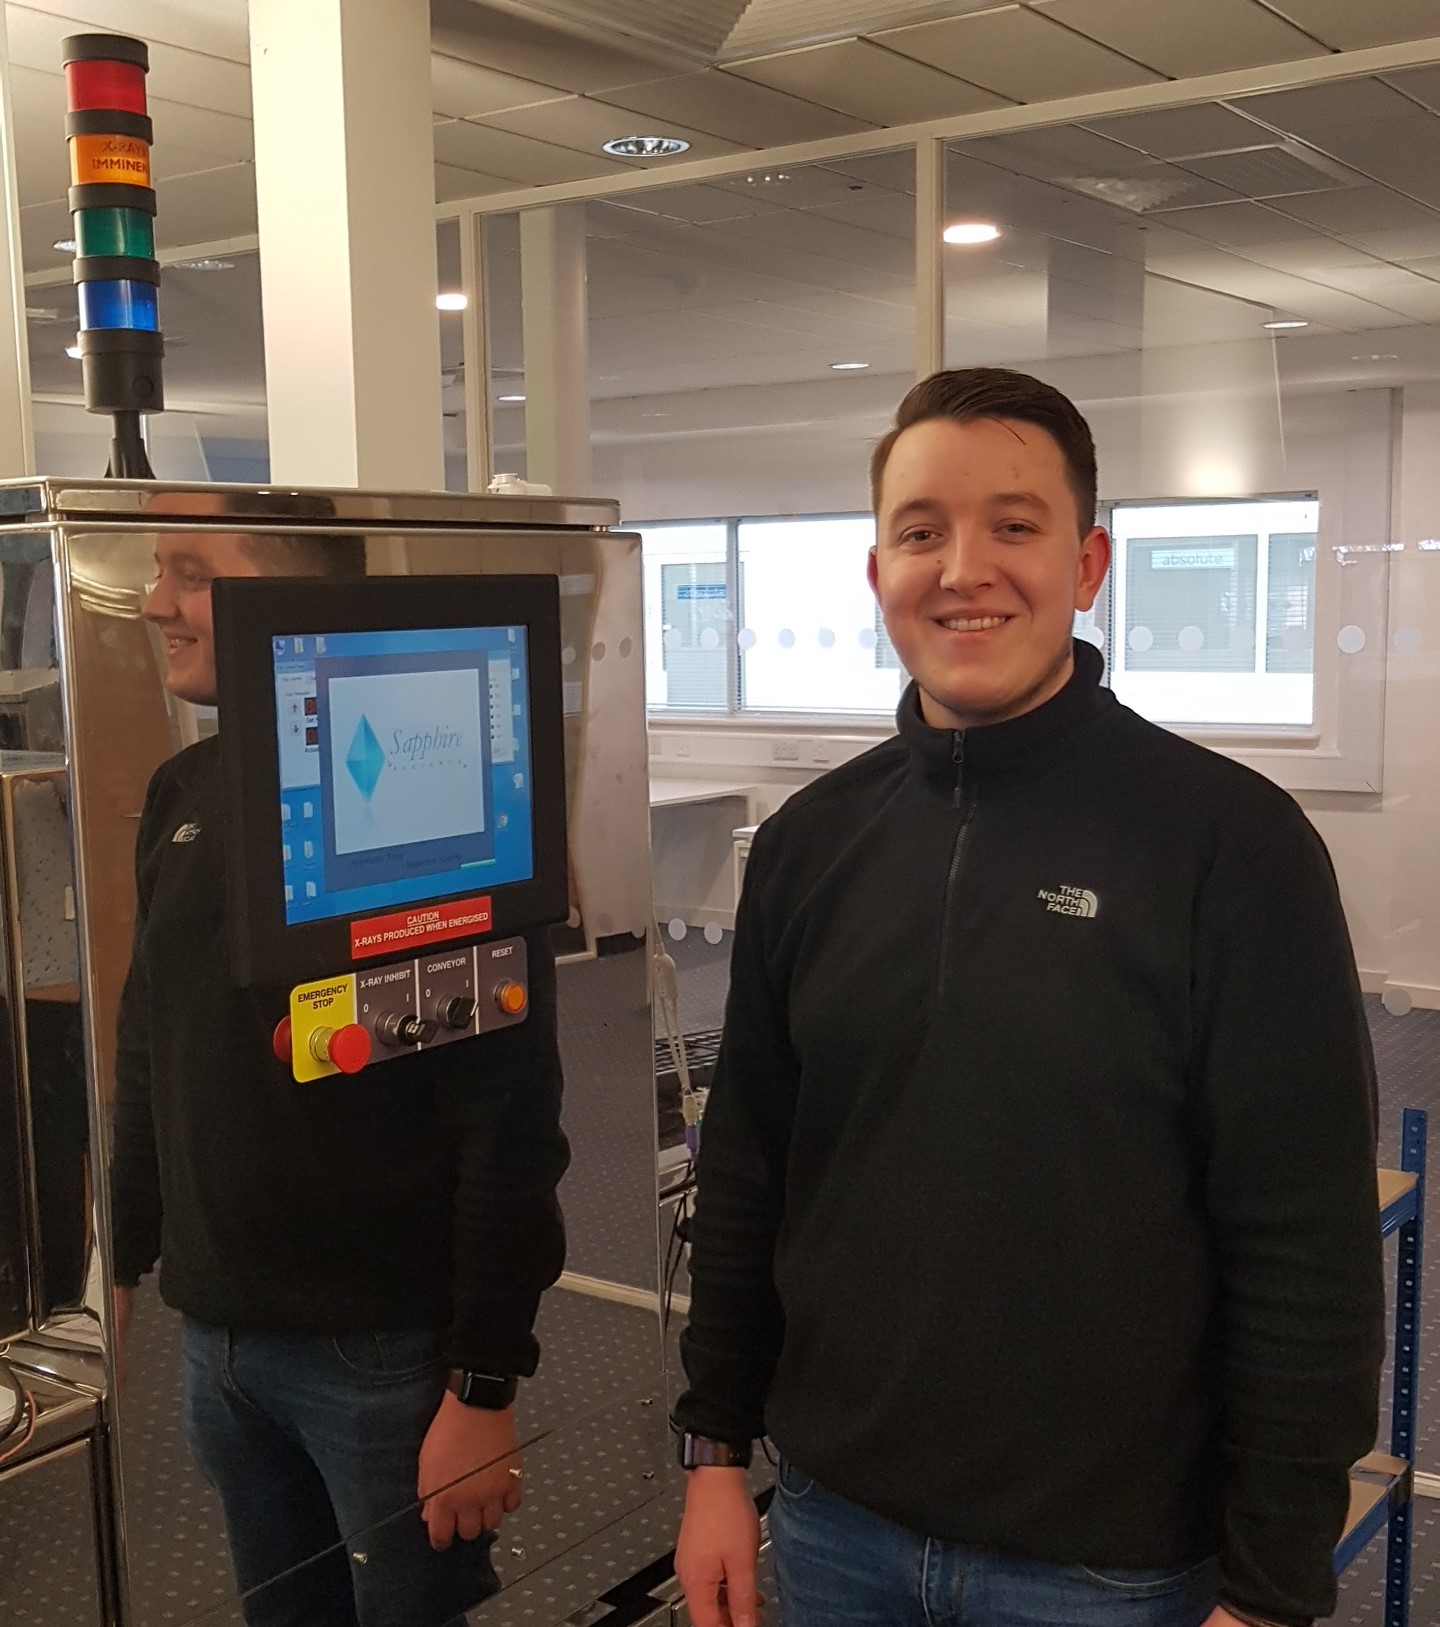 Josh at Sapphire with x-ray inspection system